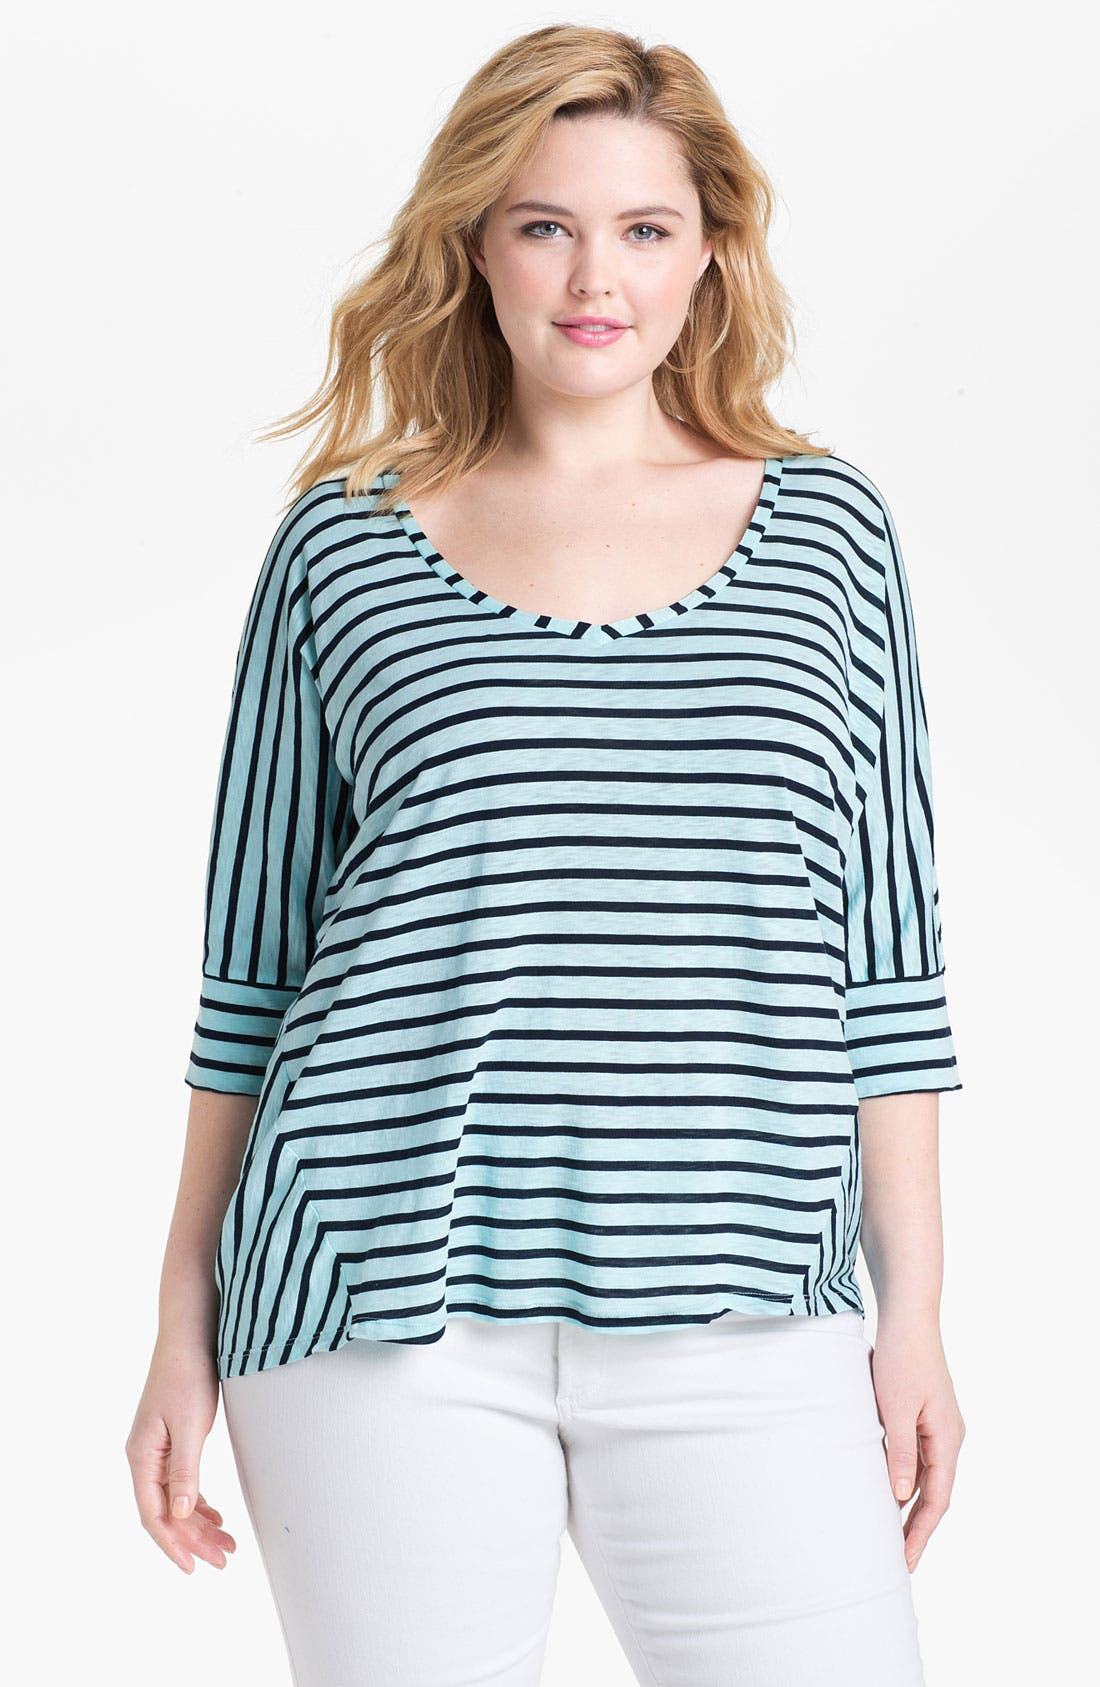 Alternate Image 1 Selected - Splendid 'Miami' Stripe Cotton Top (Plus)